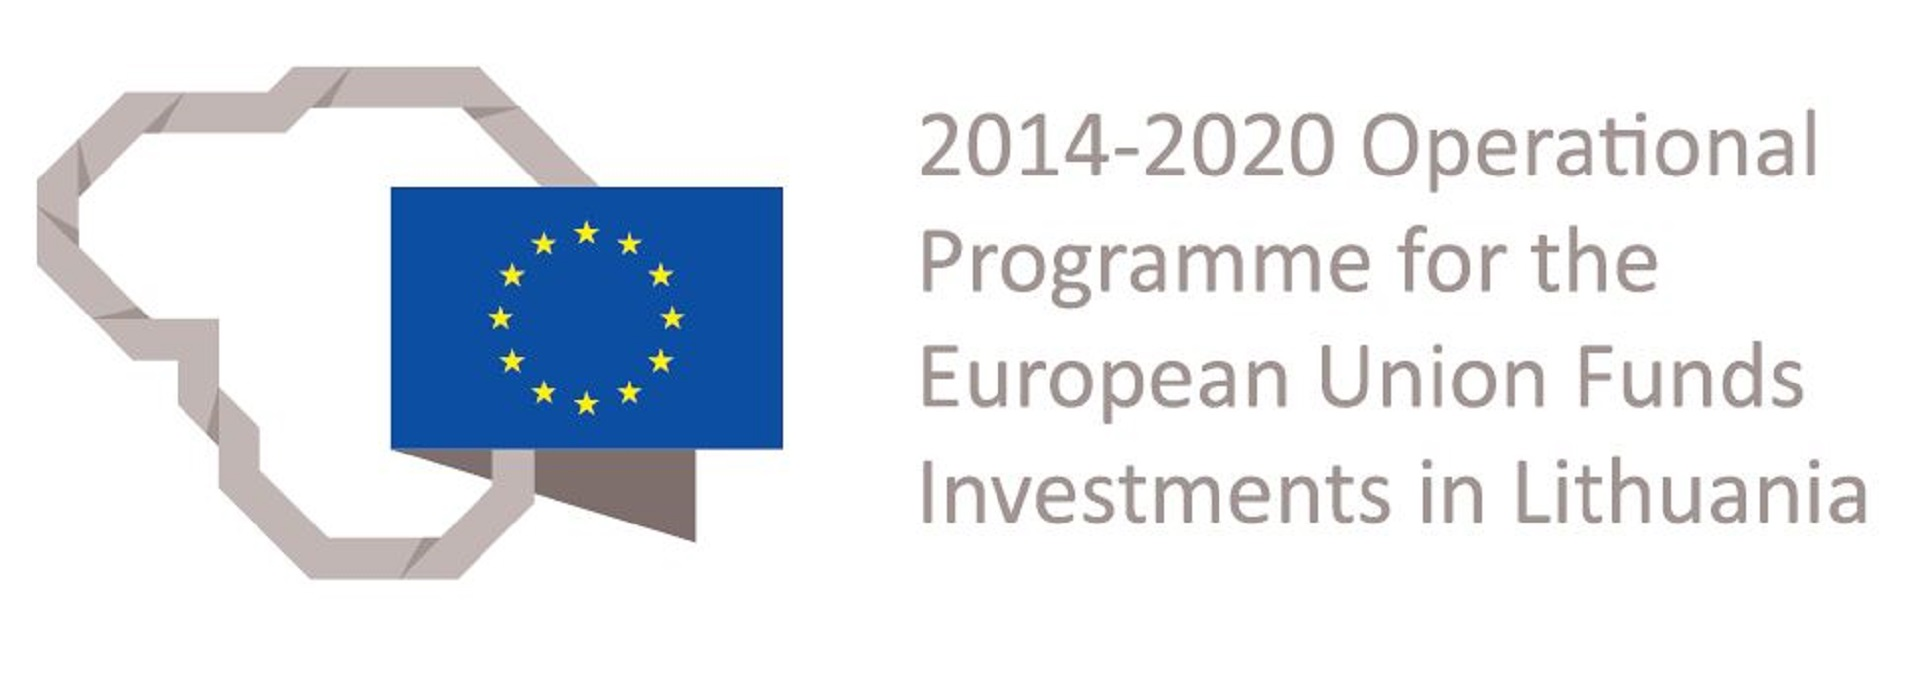 EU funds Investments in Lithuania